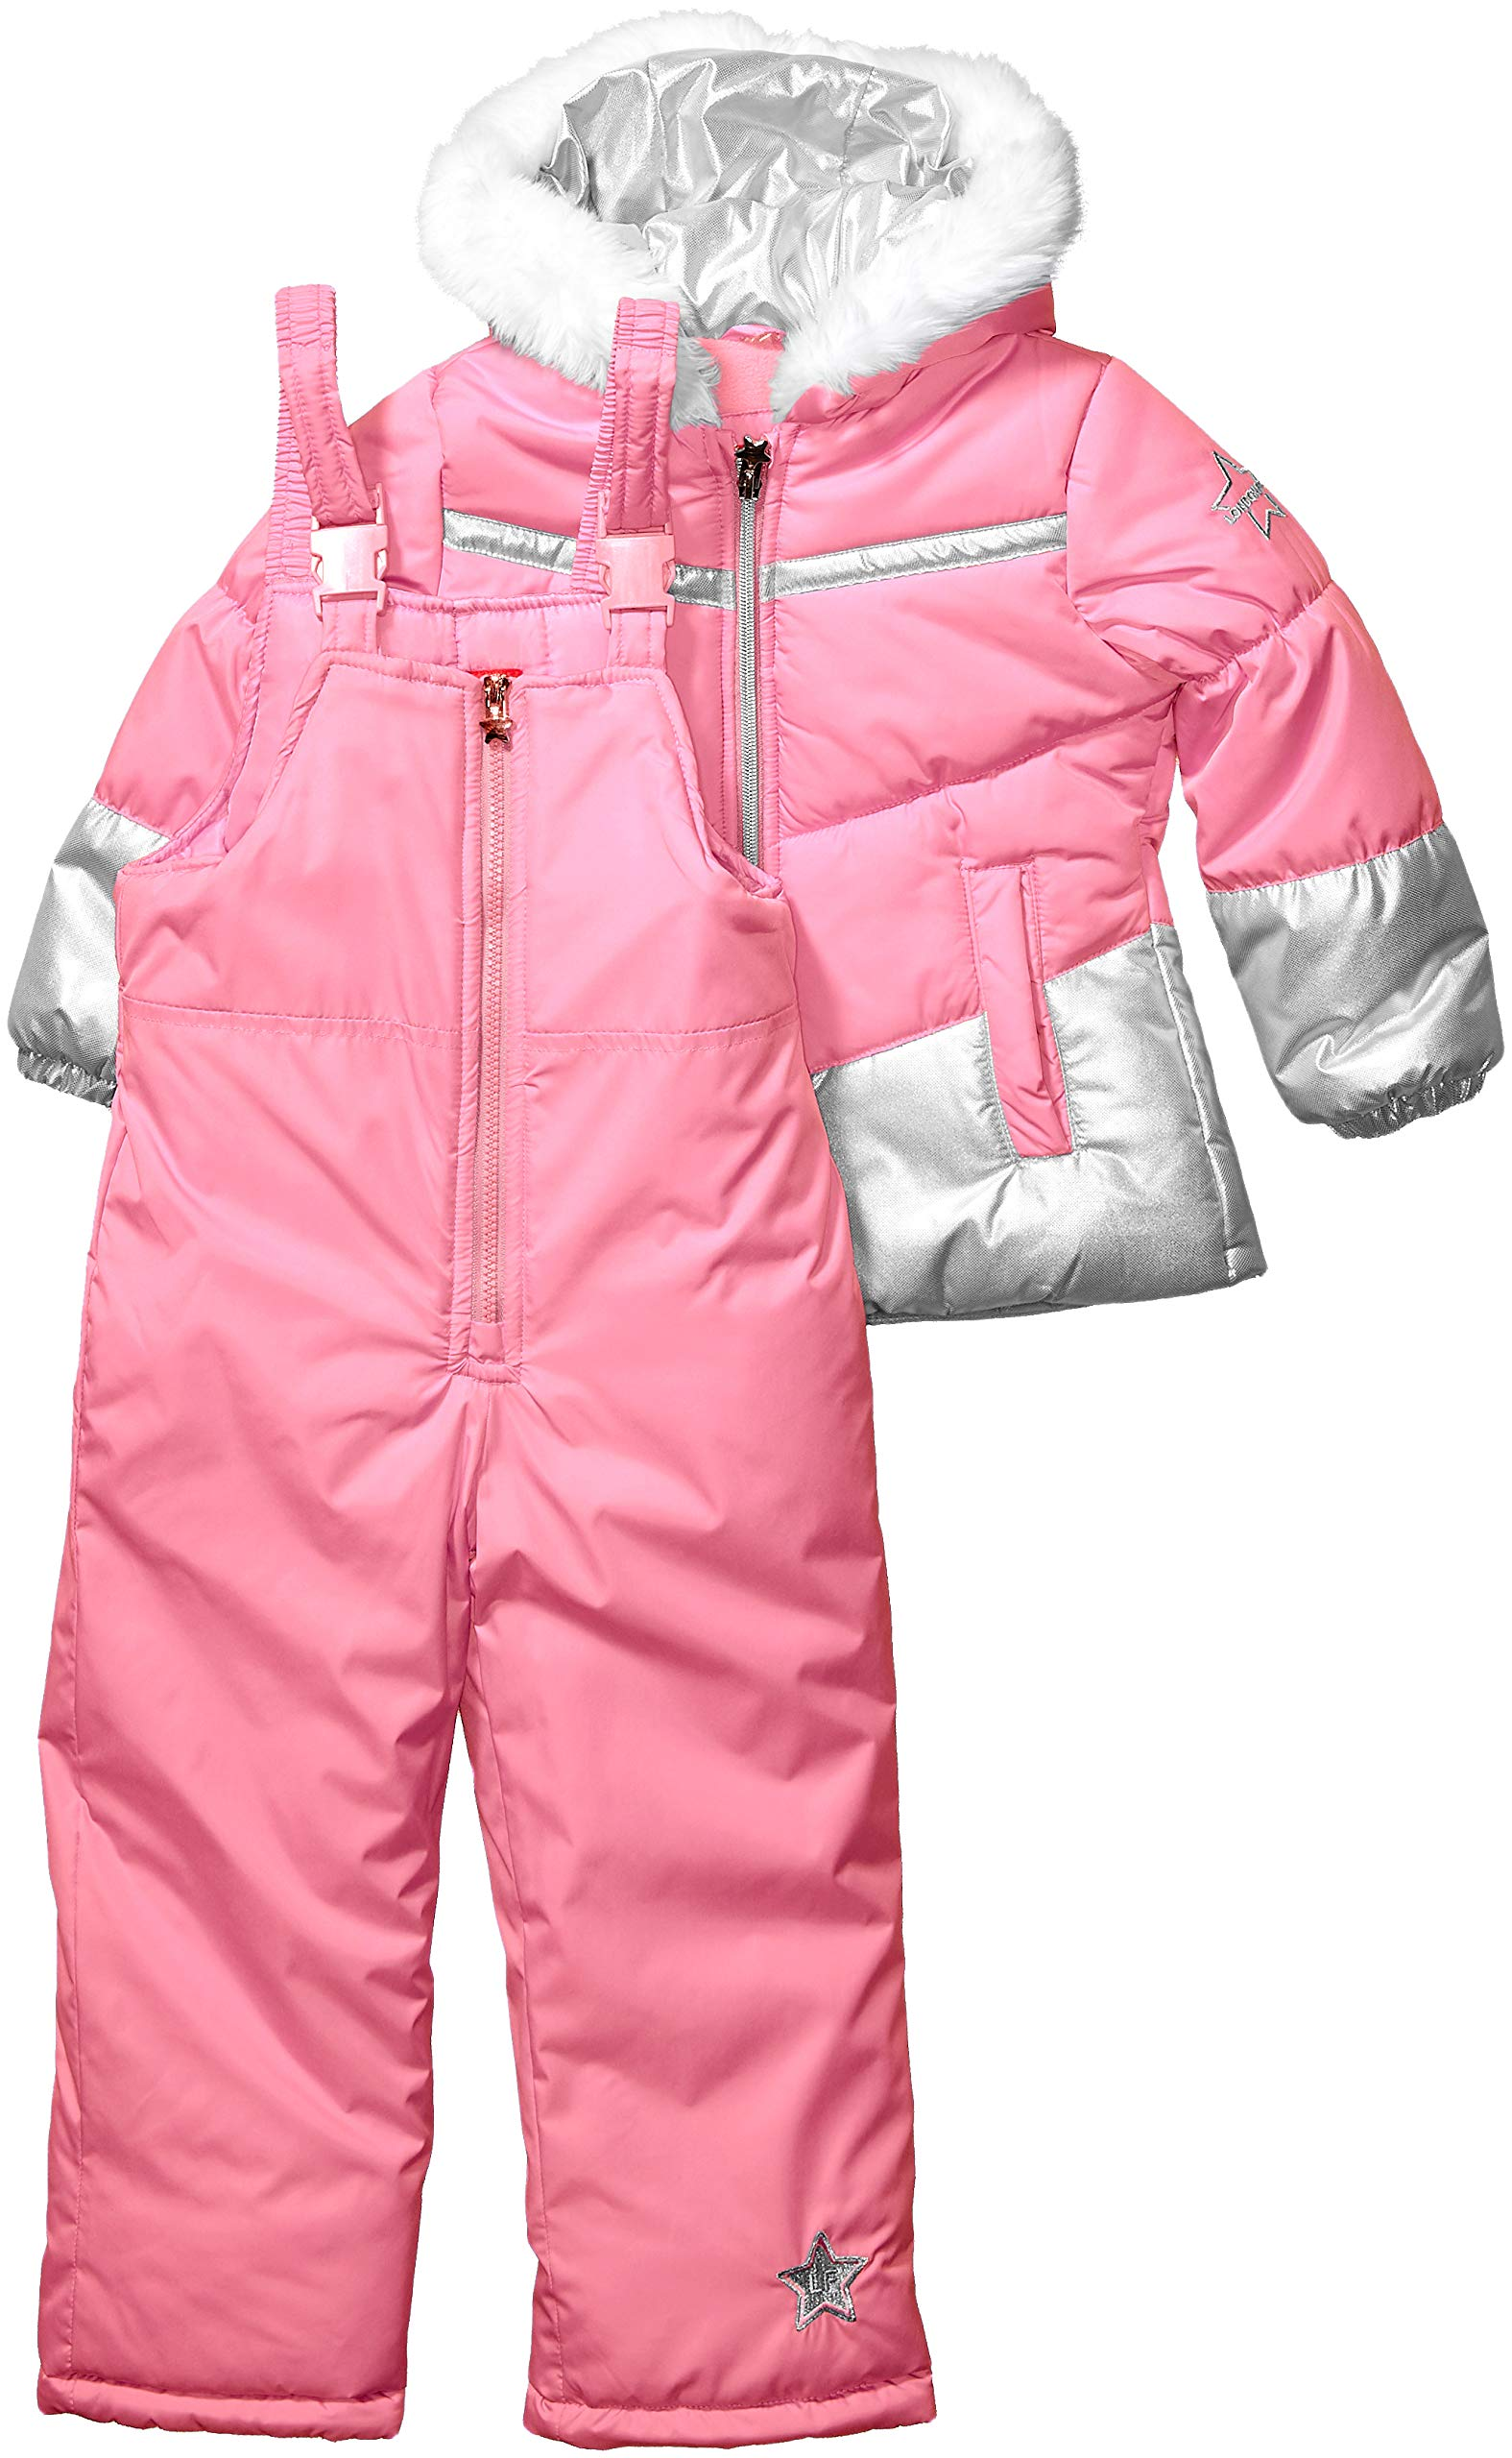 LONDON FOG Girls' Toddler Snowsuit with Snowbib and Puffer Jacket, Unicorn Rose Gold Foil, 4T